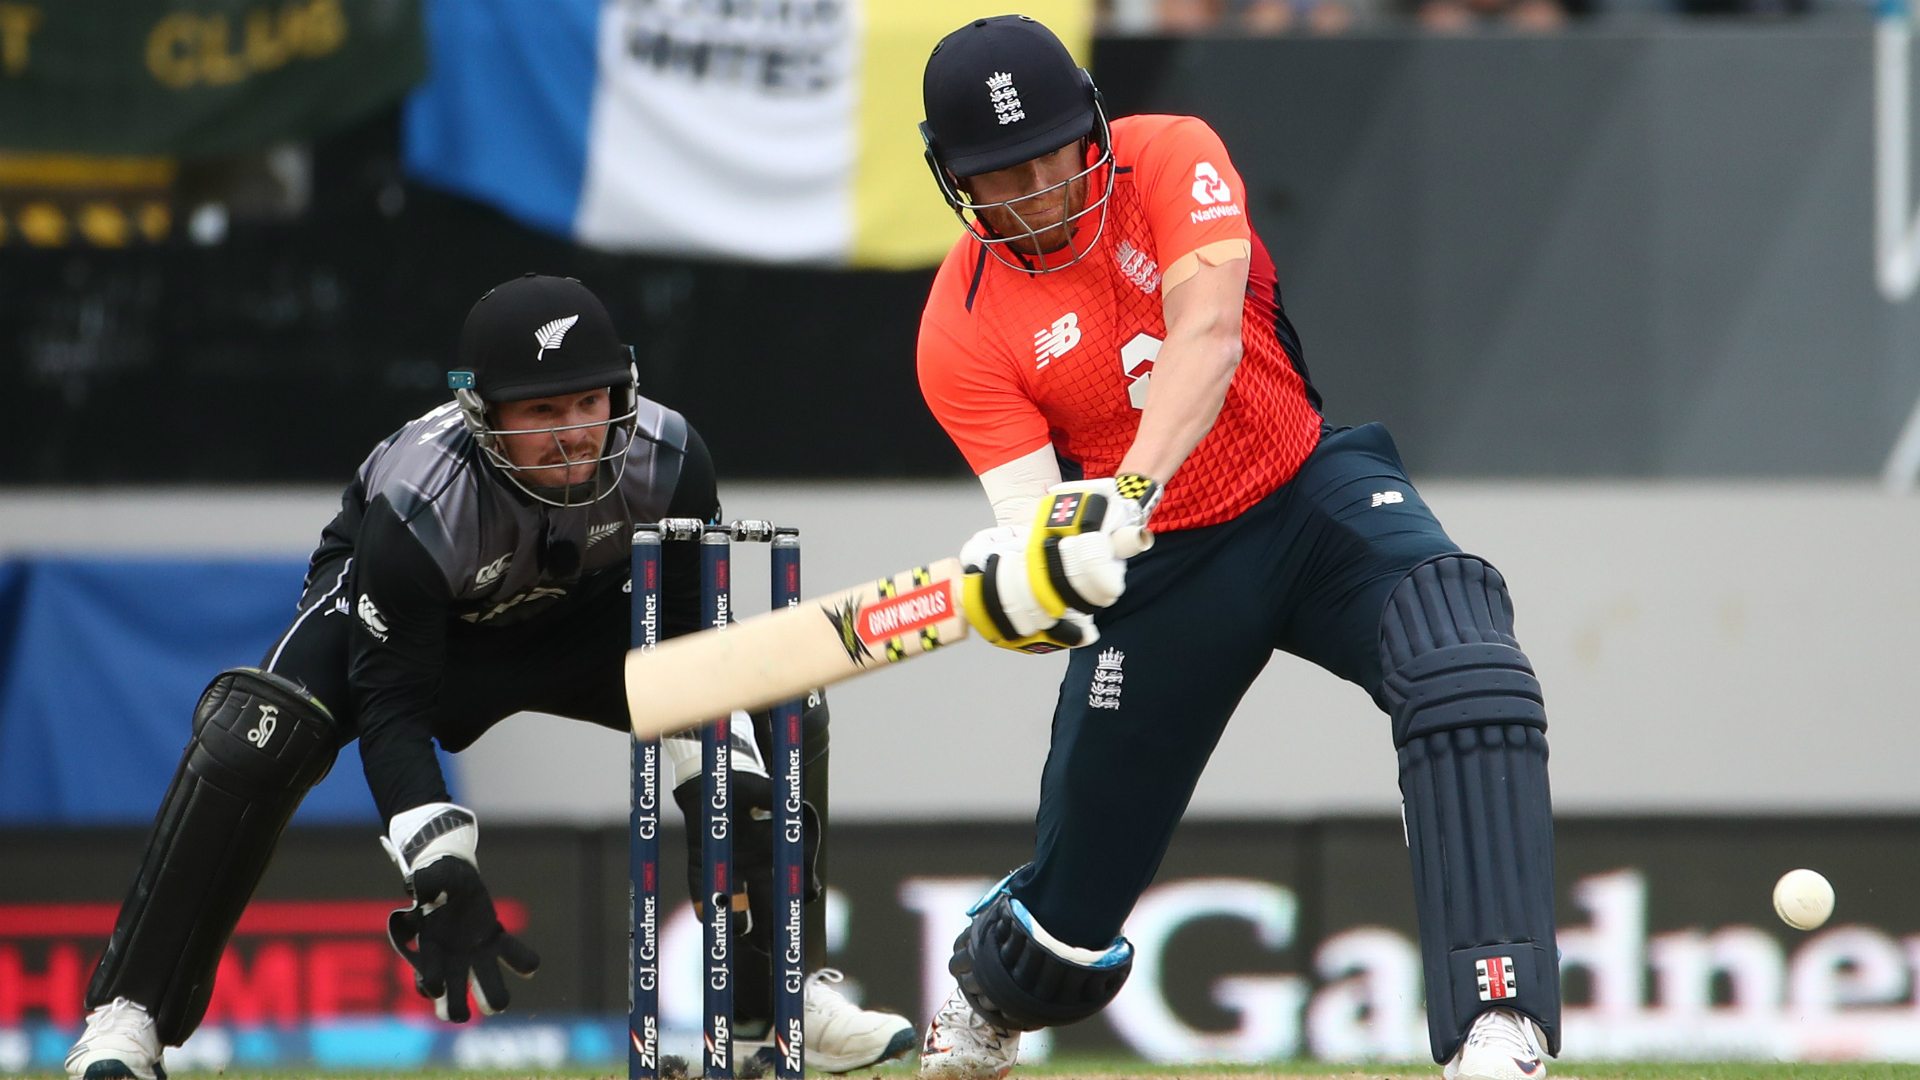 England overcome Black Caps in another Super Over to secure Twenty20 series win